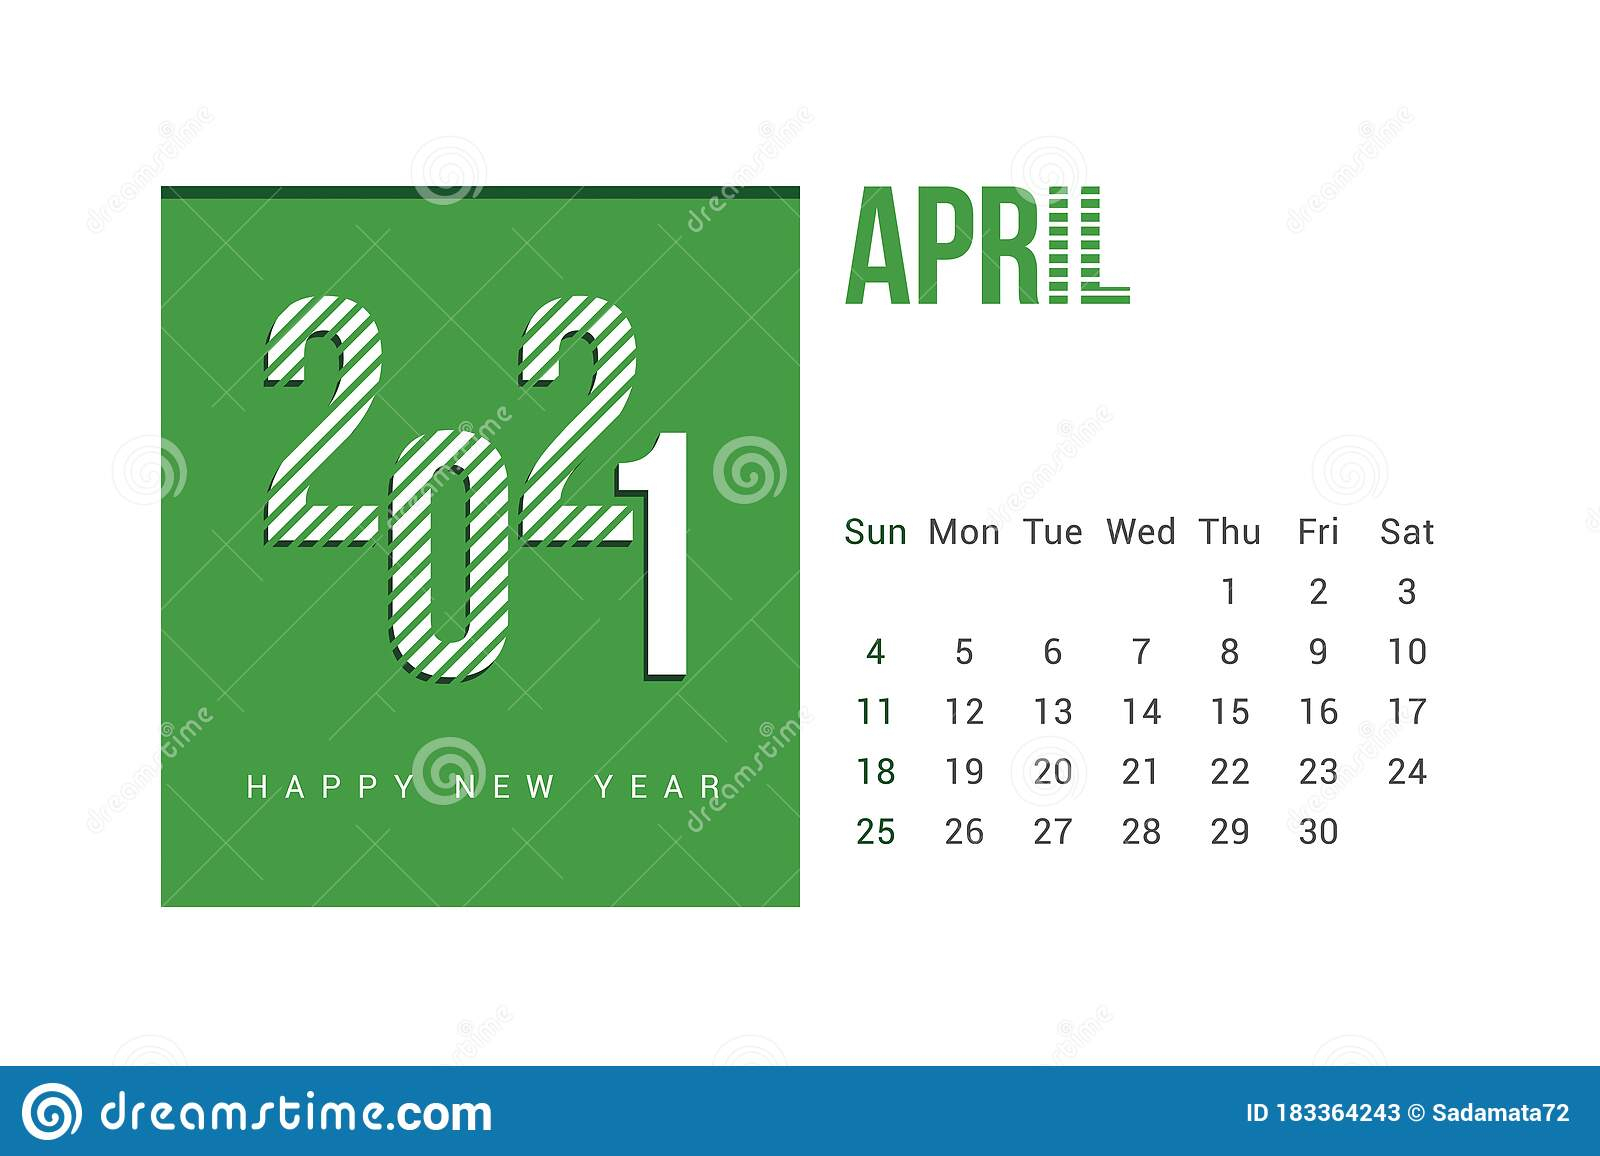 April 2021 Calendar Template Design With White Background